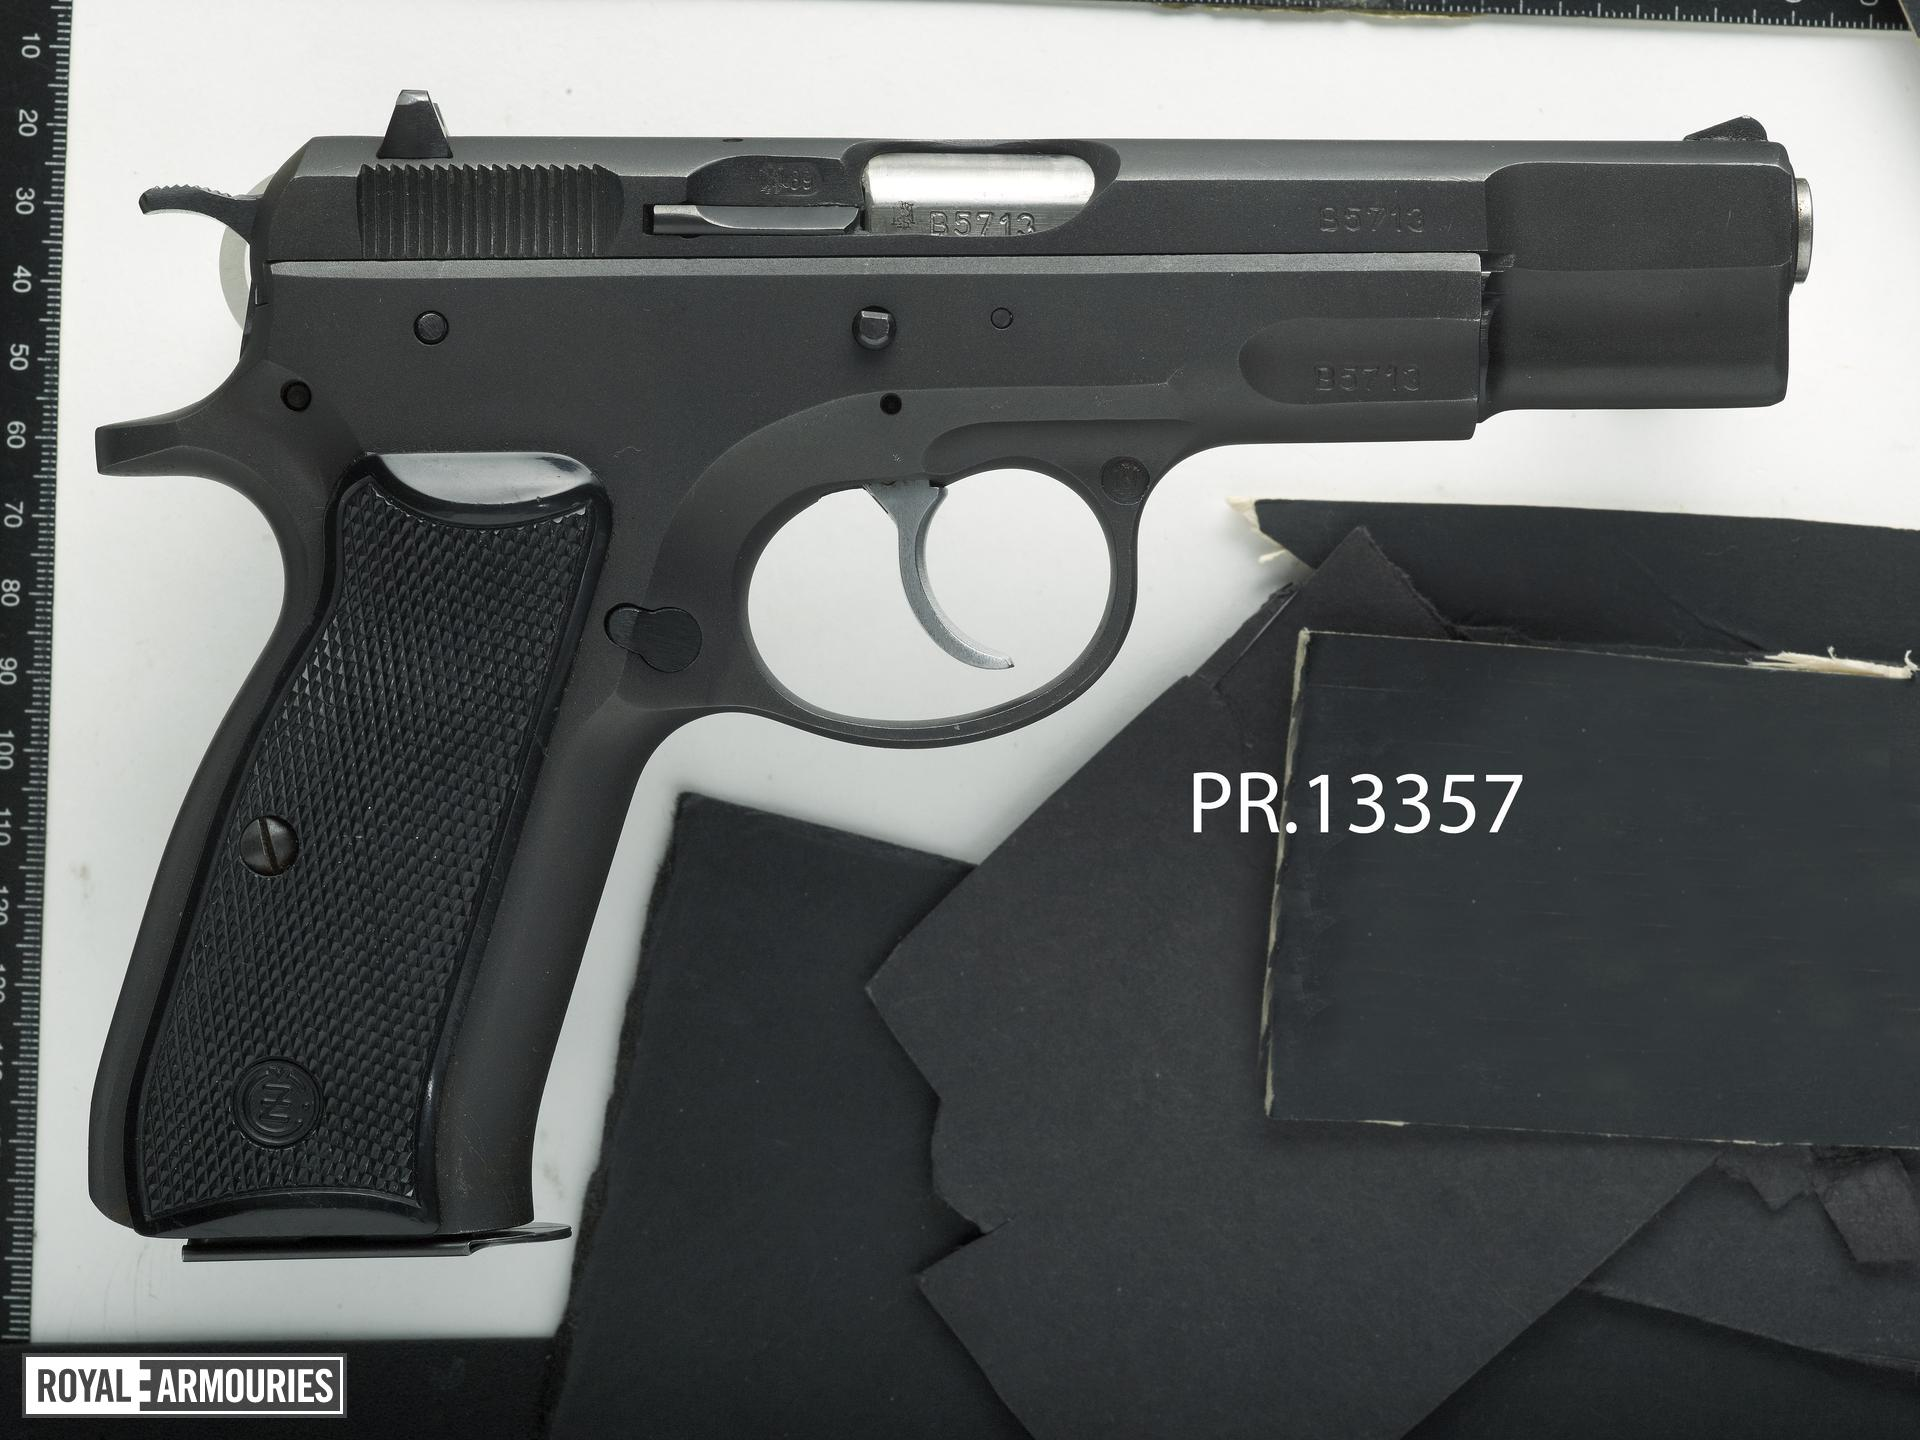 Centrefire self-loading pistol - CZ Model 75